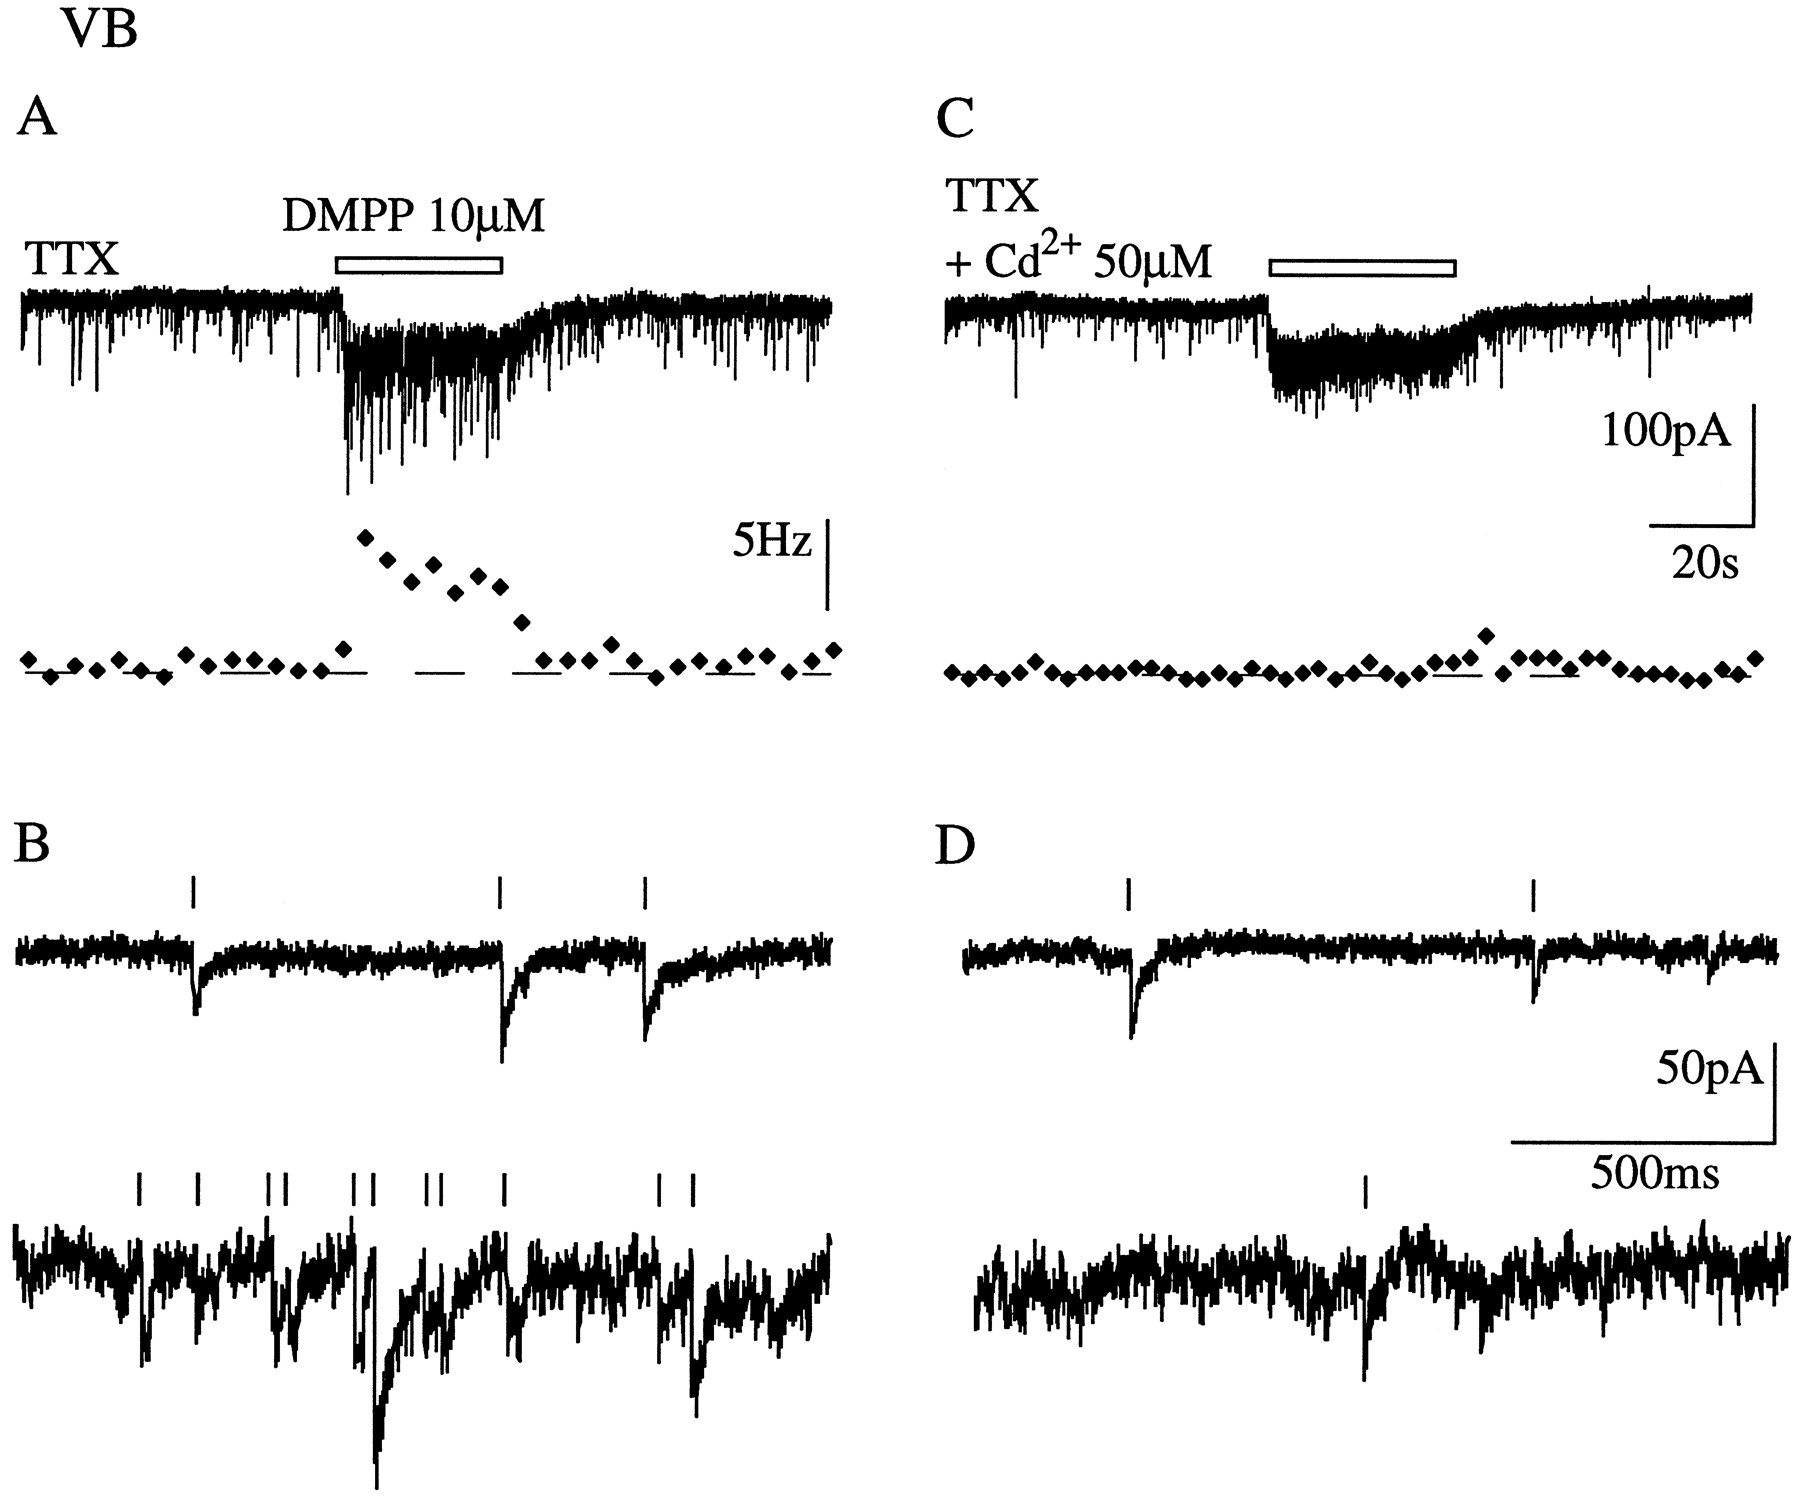 Role of Ca2+ Ions in Nicotinic Facilitation of GABA Release in Mouse